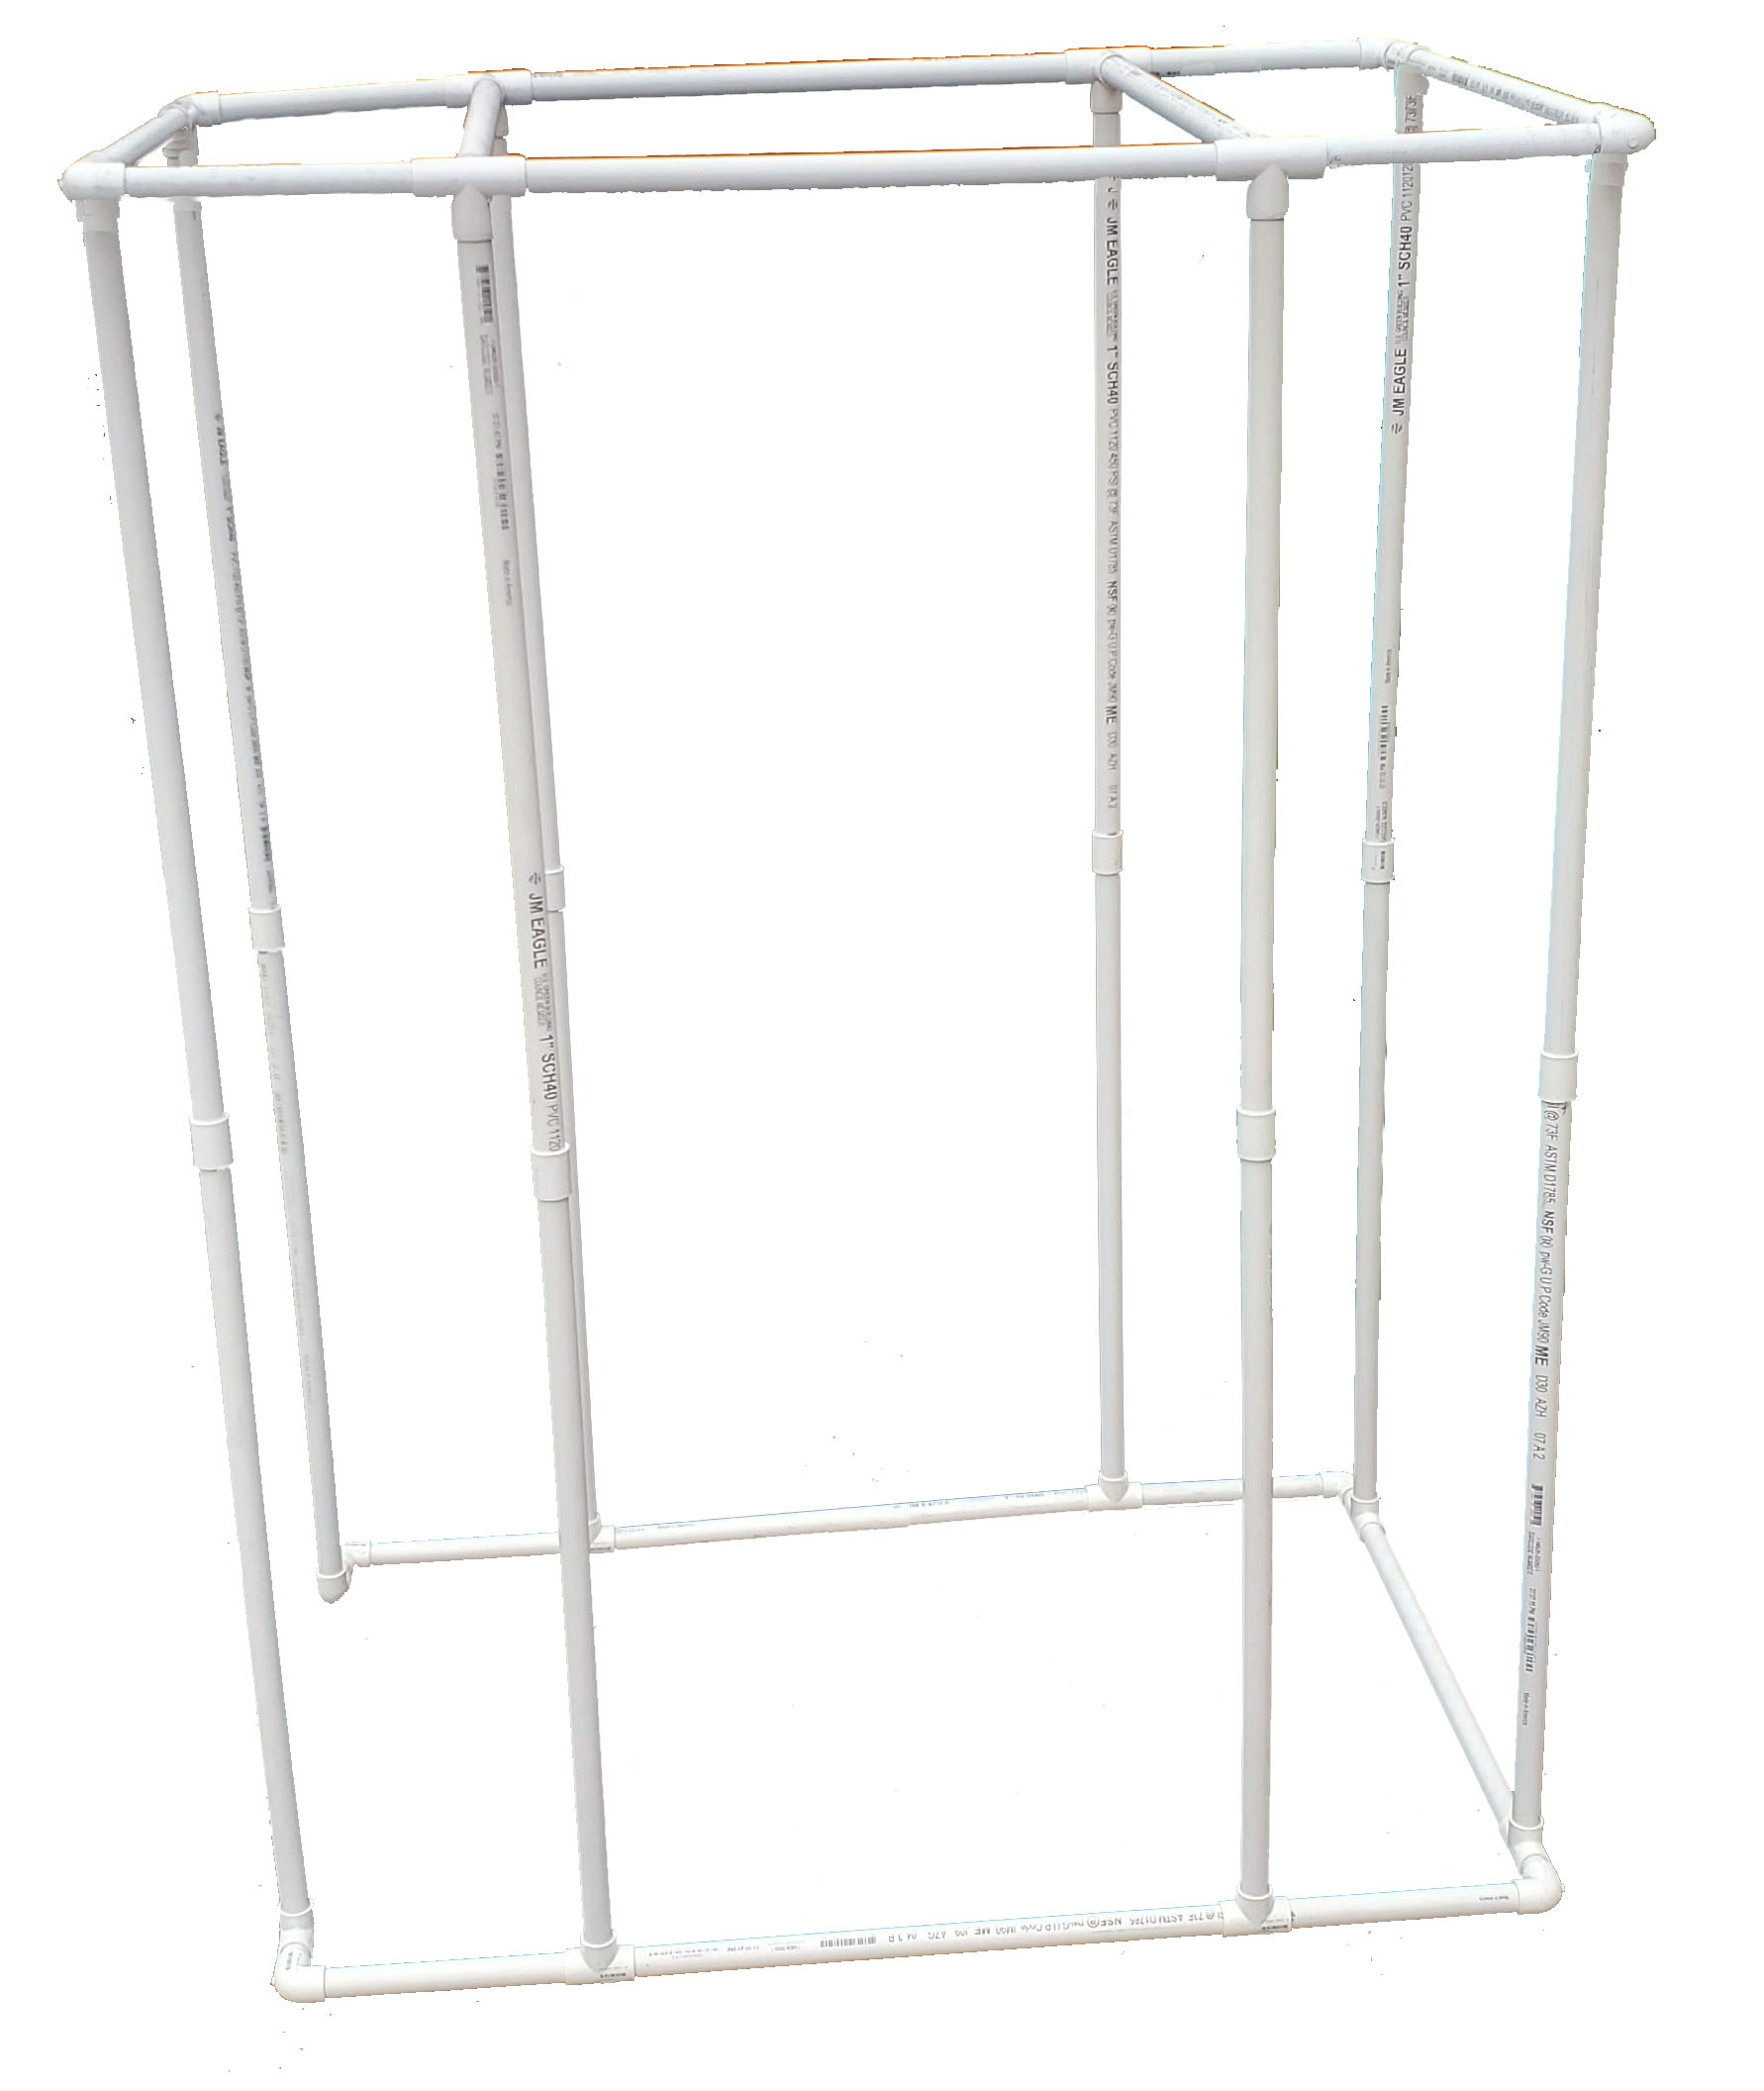 PVC VocalBooth Frame 58x38 complete